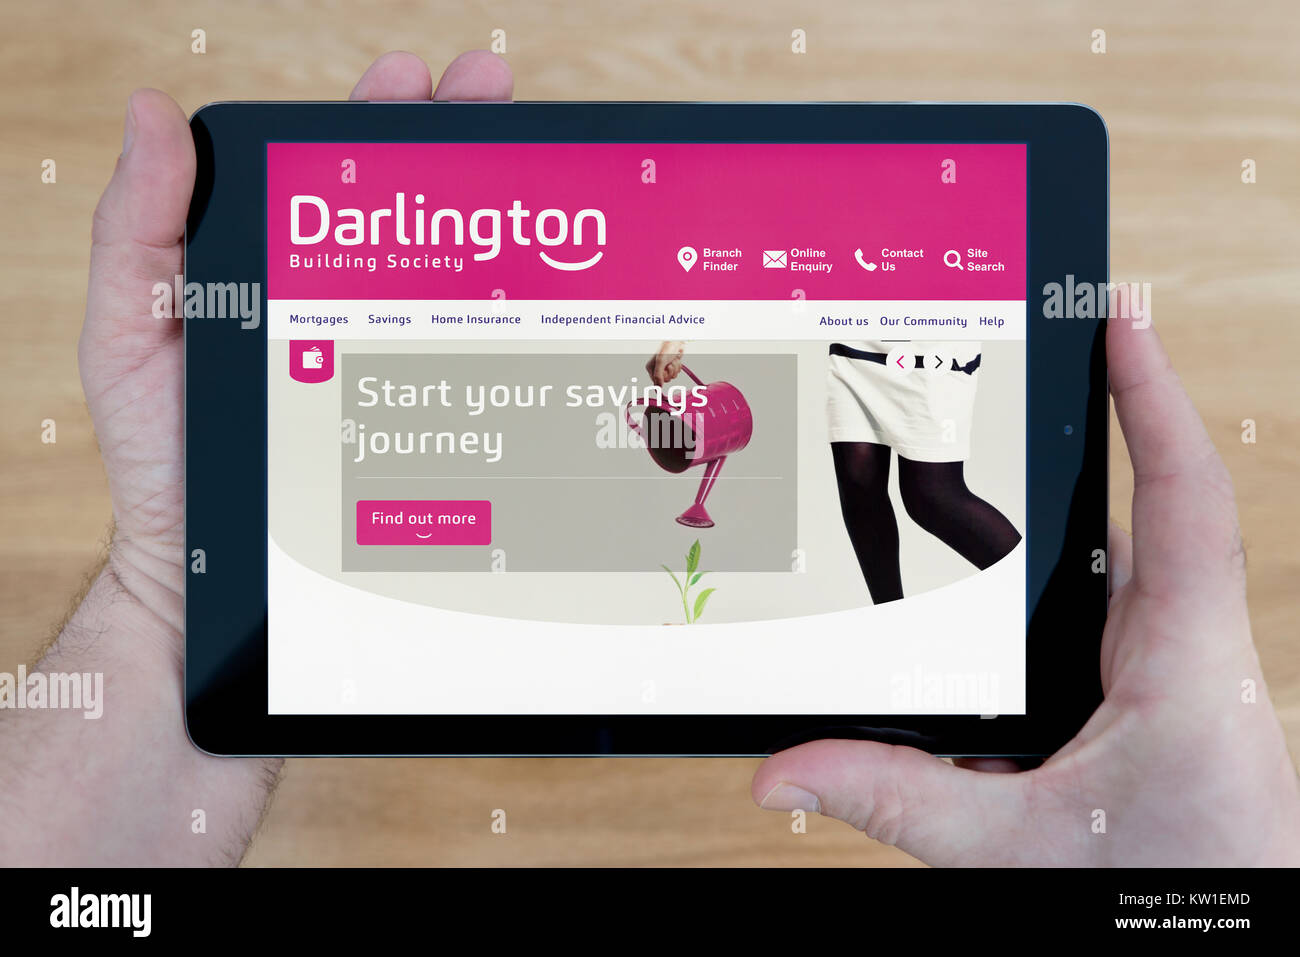 A man looks at the Darlington Building Society website on his iPad tablet device, shot against a wooden table top - Stock Image